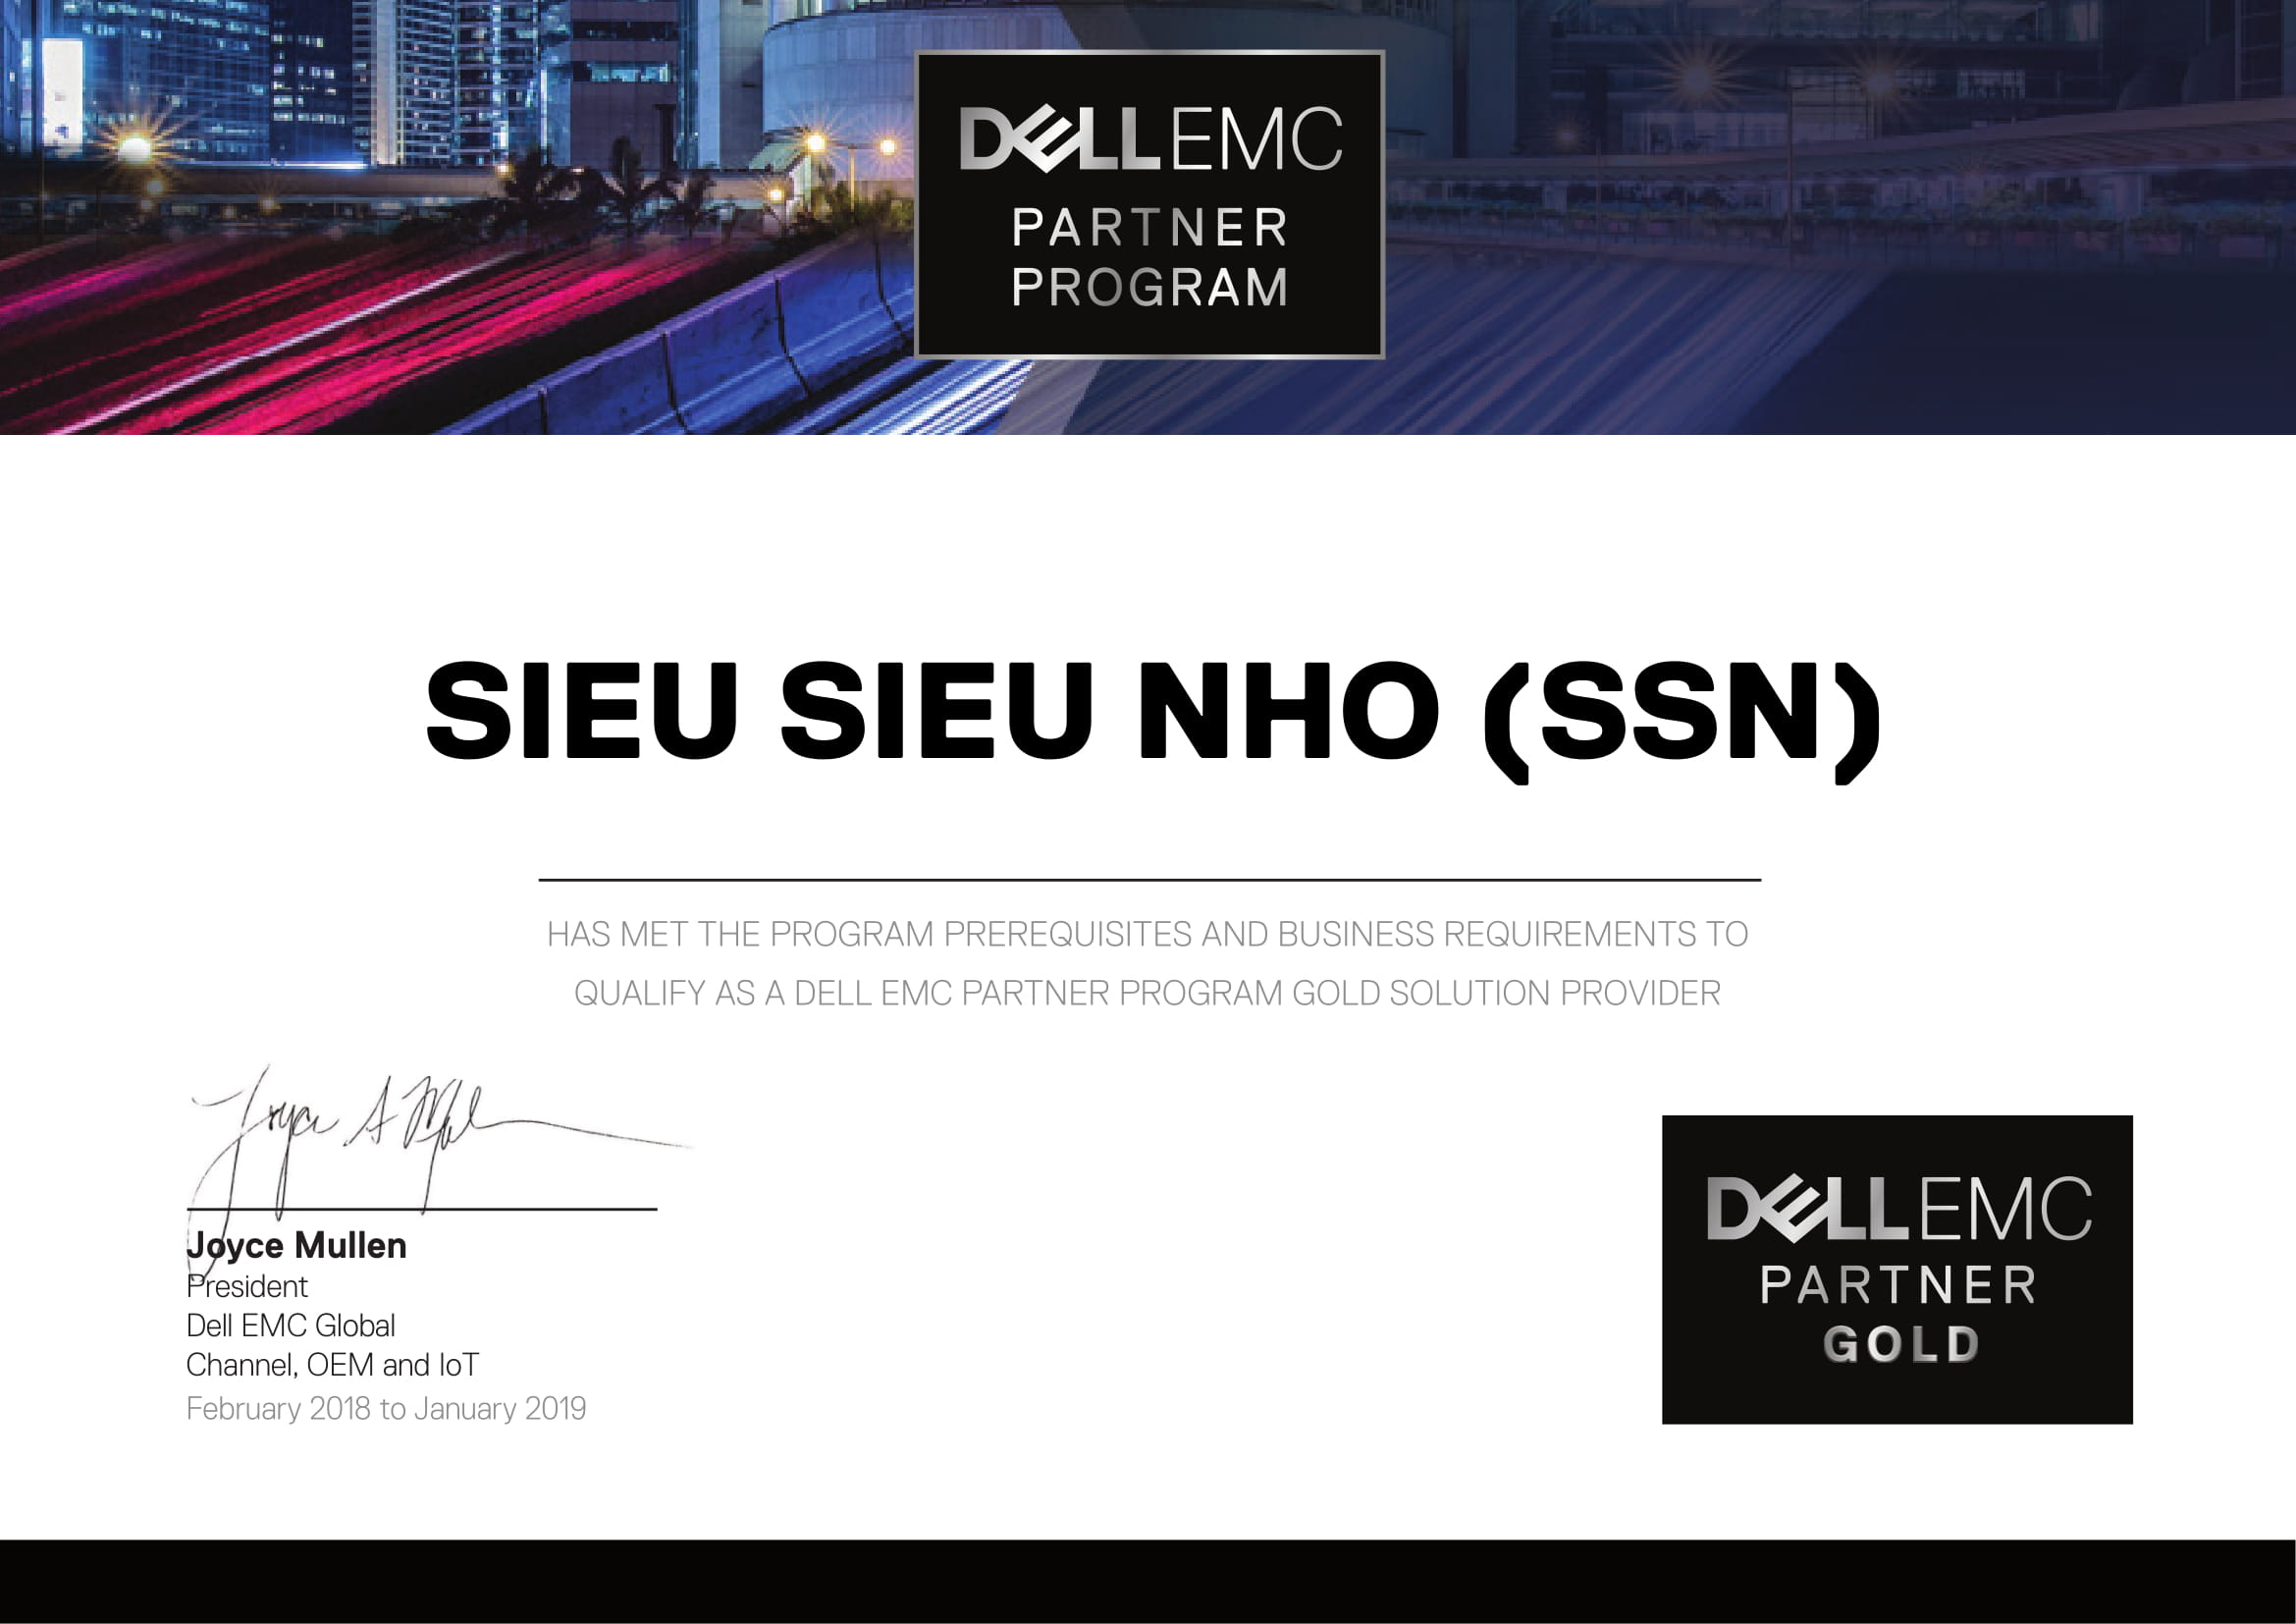 GCN Gold Partner - DELL EMC PARTNER PROGRAM